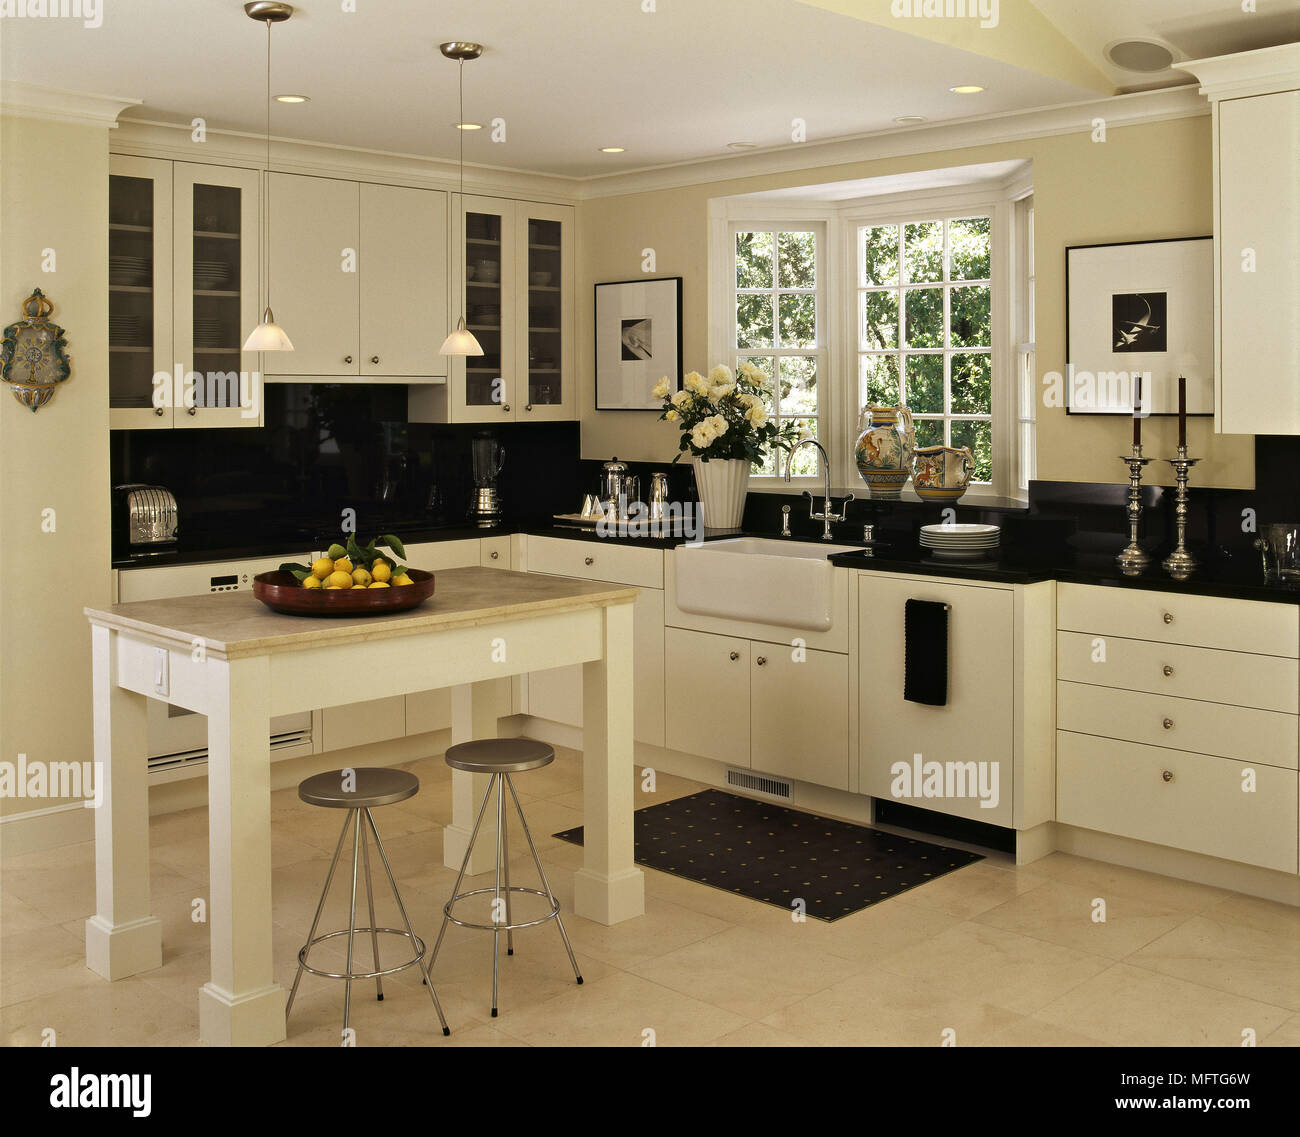 Modern country kitchen cream units black granite worktops central ...